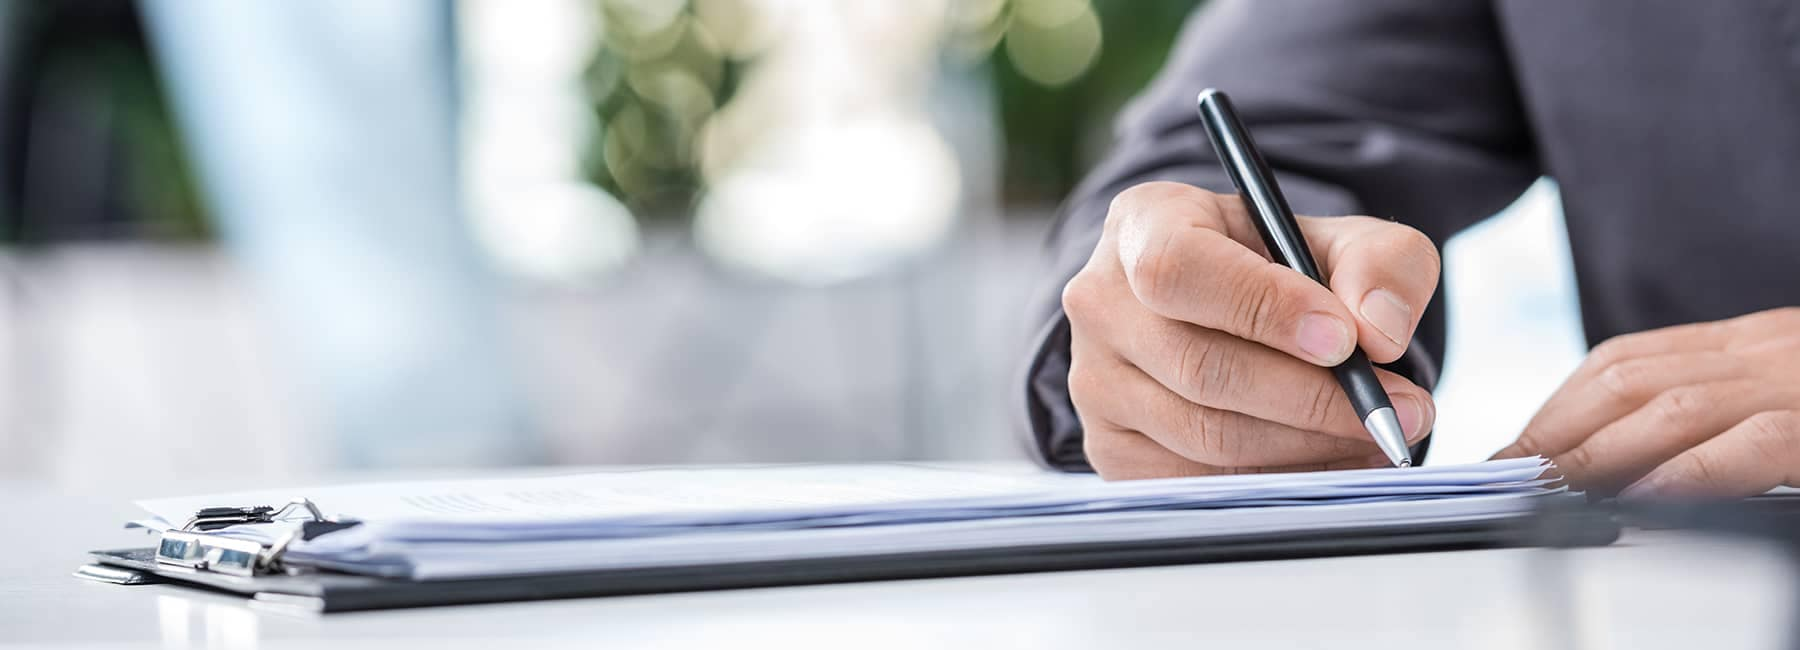 Finance Banner - person signing papers